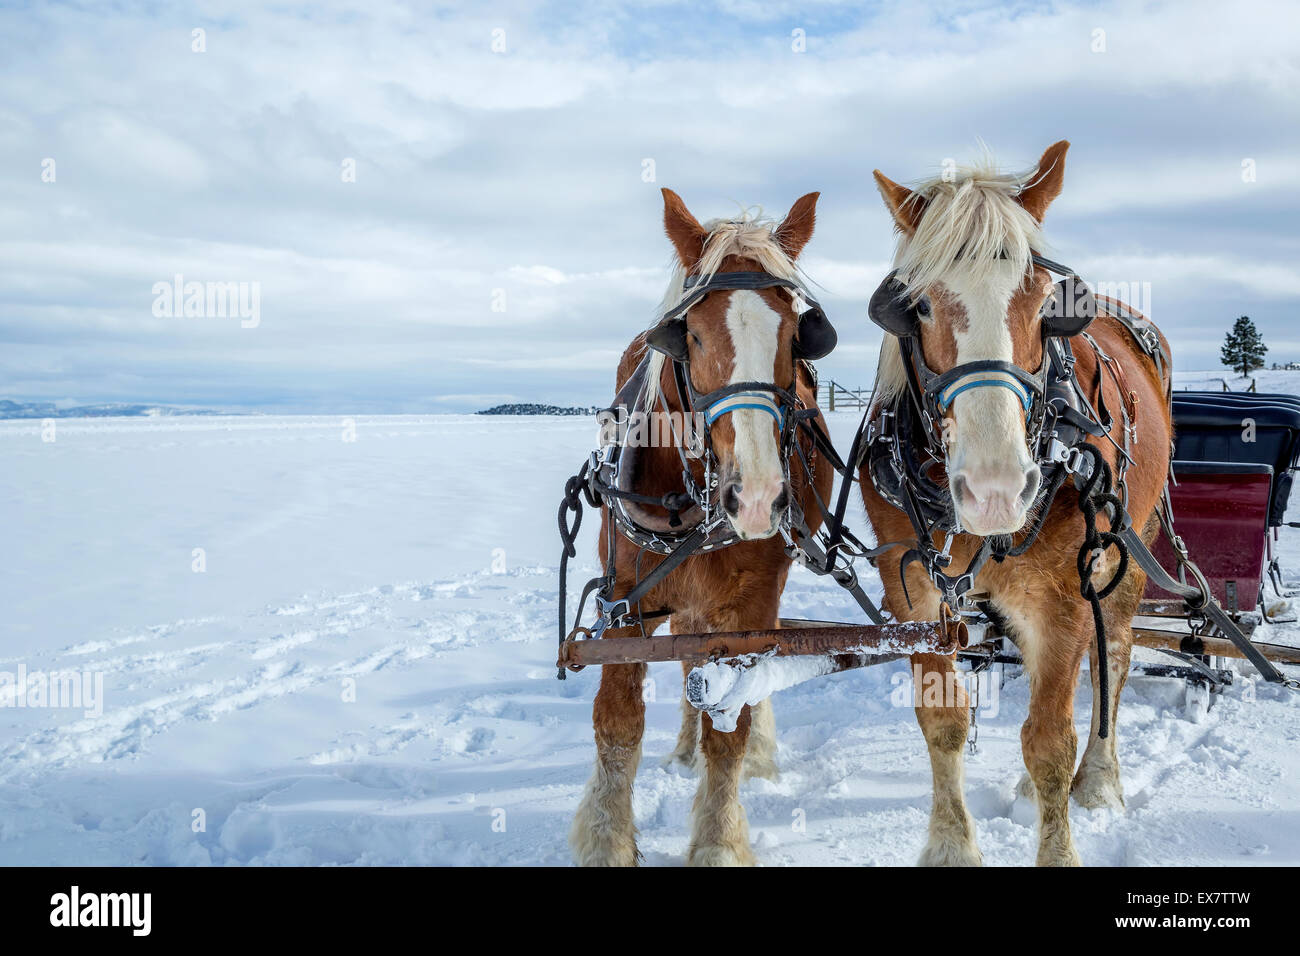 Sleigh with horses in wintertime, Bryce Canyon, Utah - Stock Image